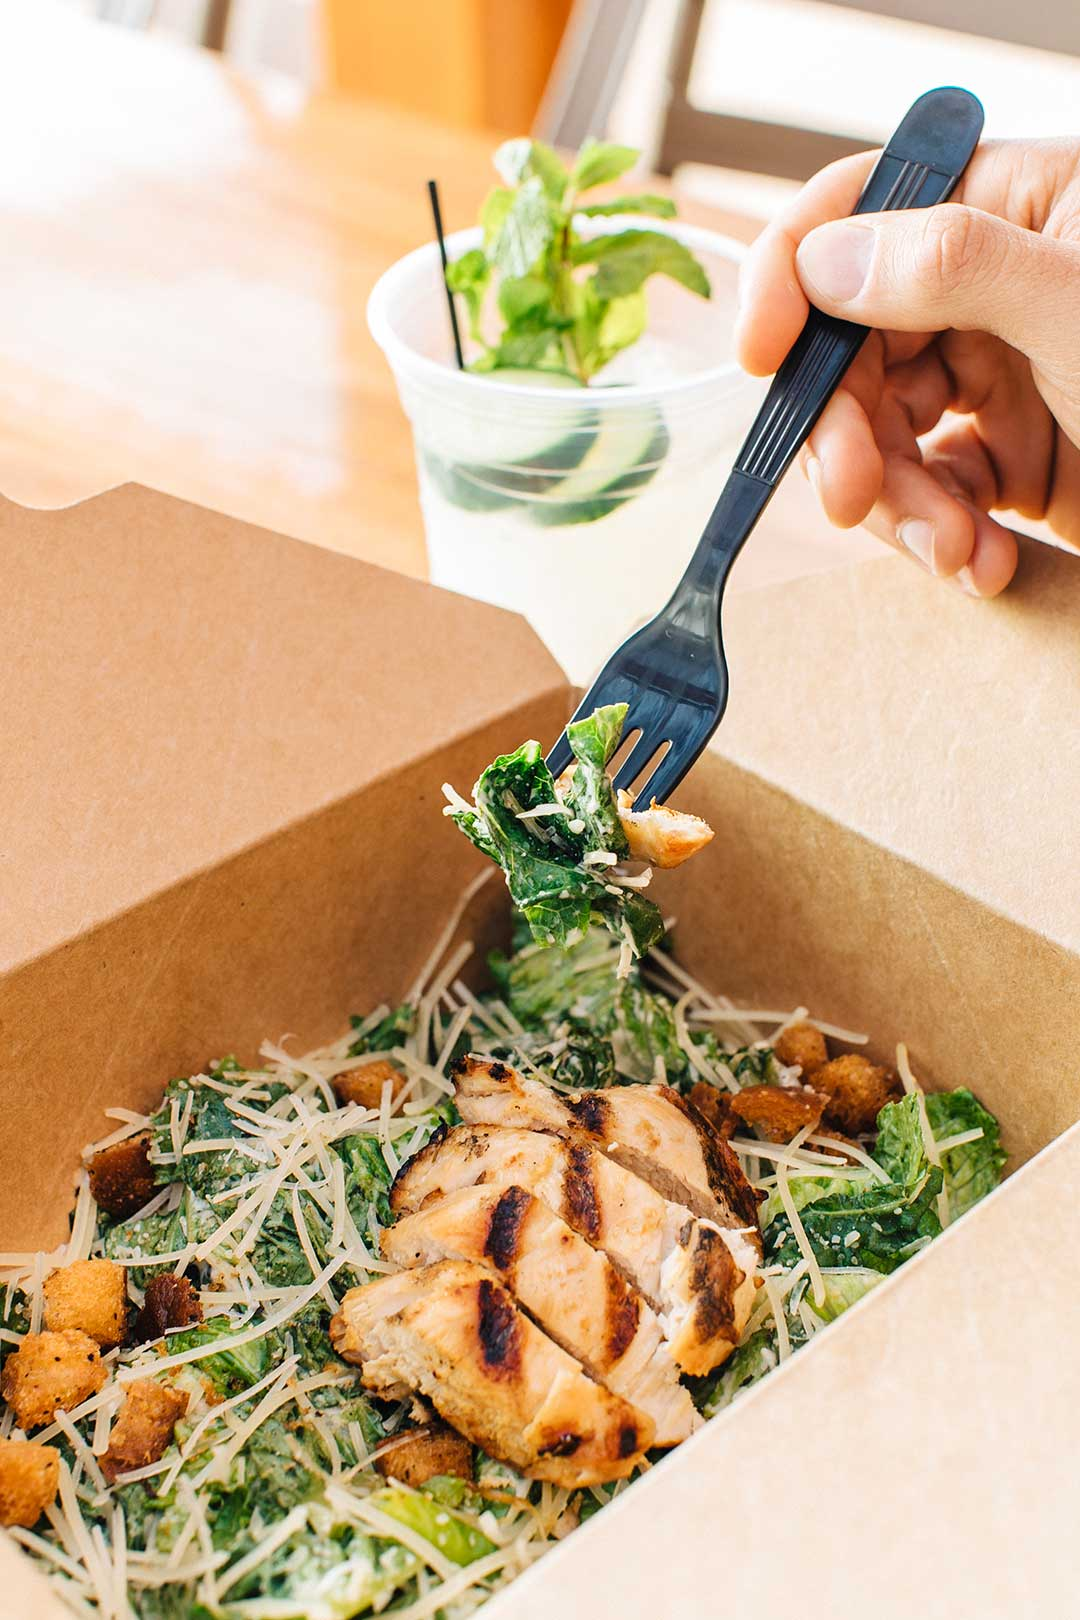 Delivery and take out salad